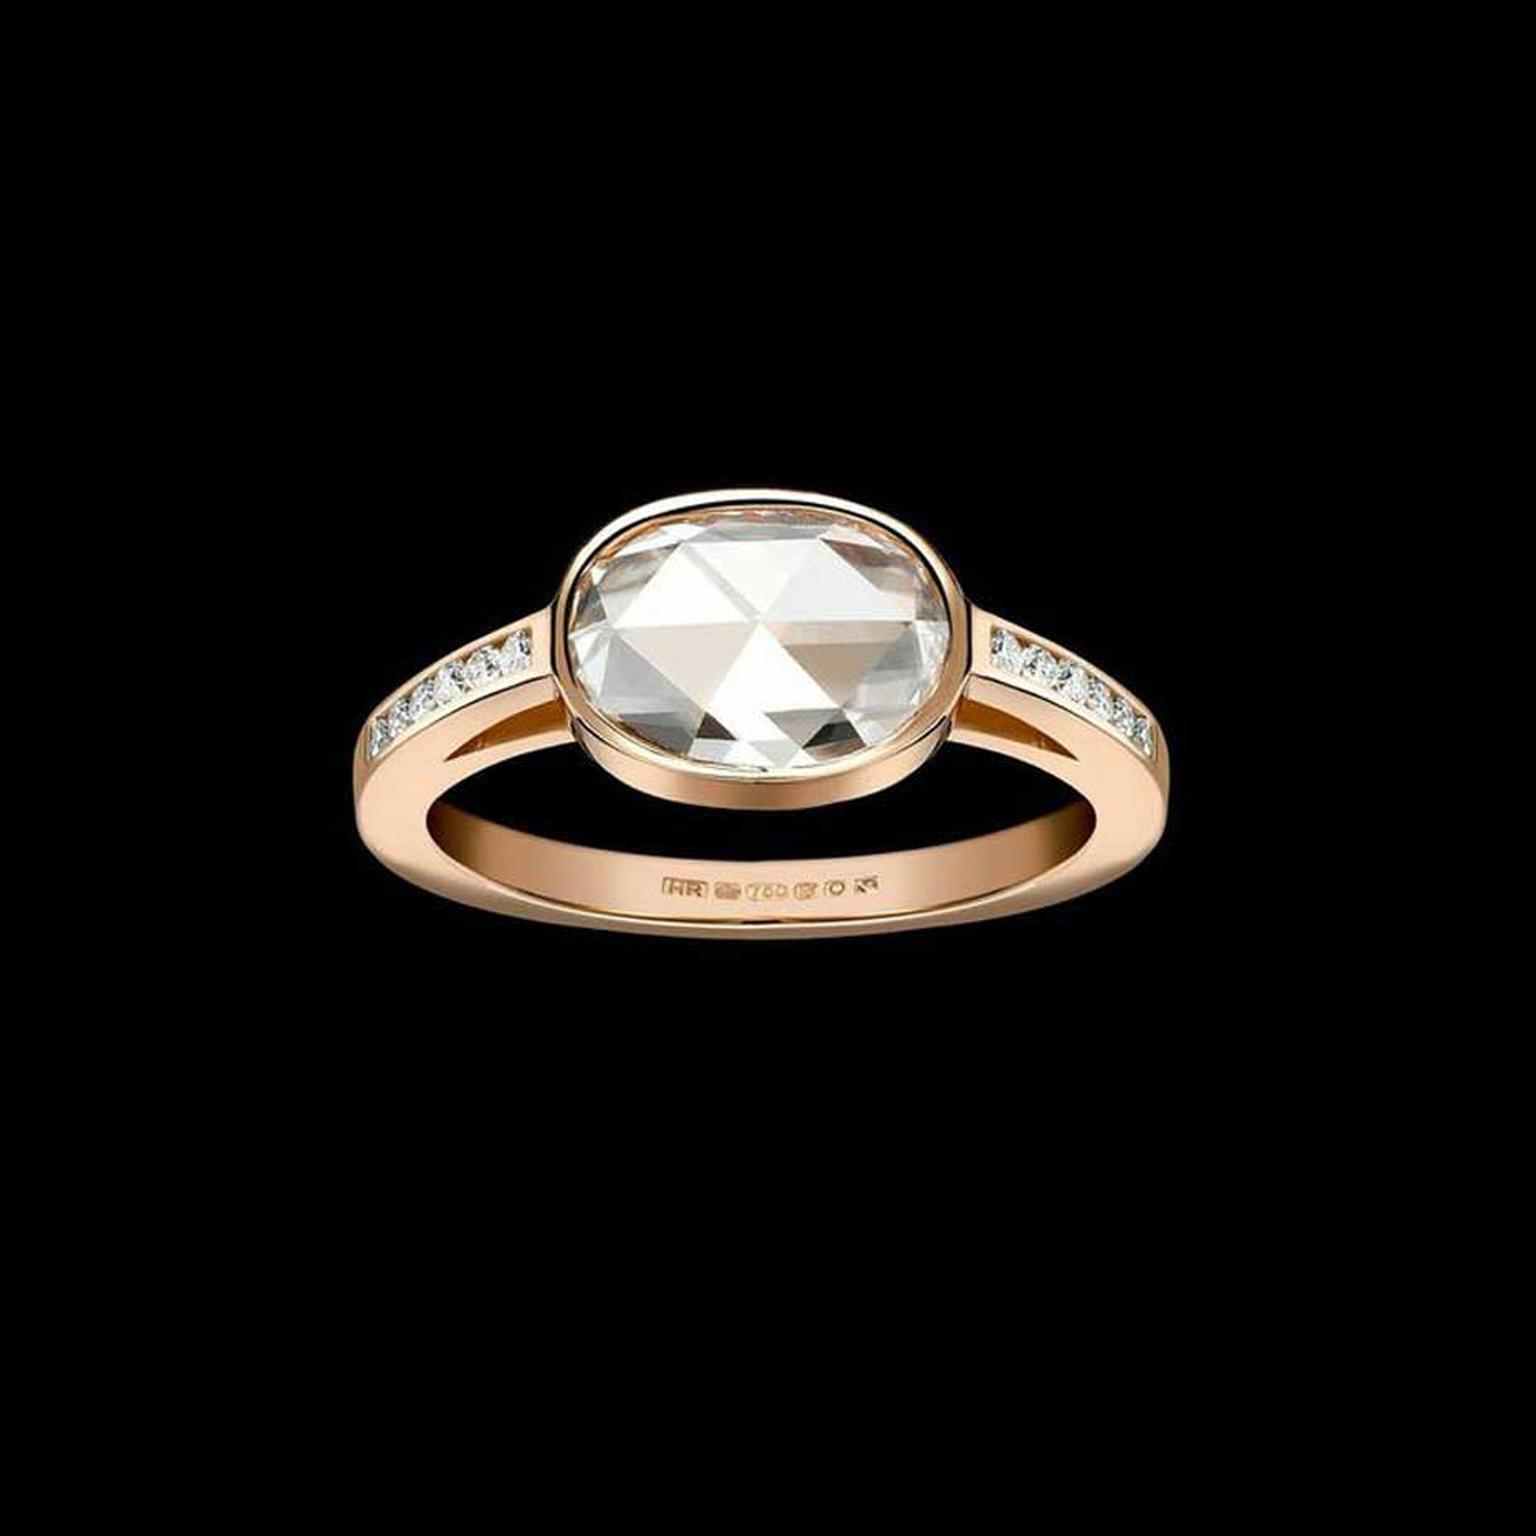 Bespoke Hattie Rickards rose gold engagement ring, set with a rose-cut oval diamond and pavé diamonds.